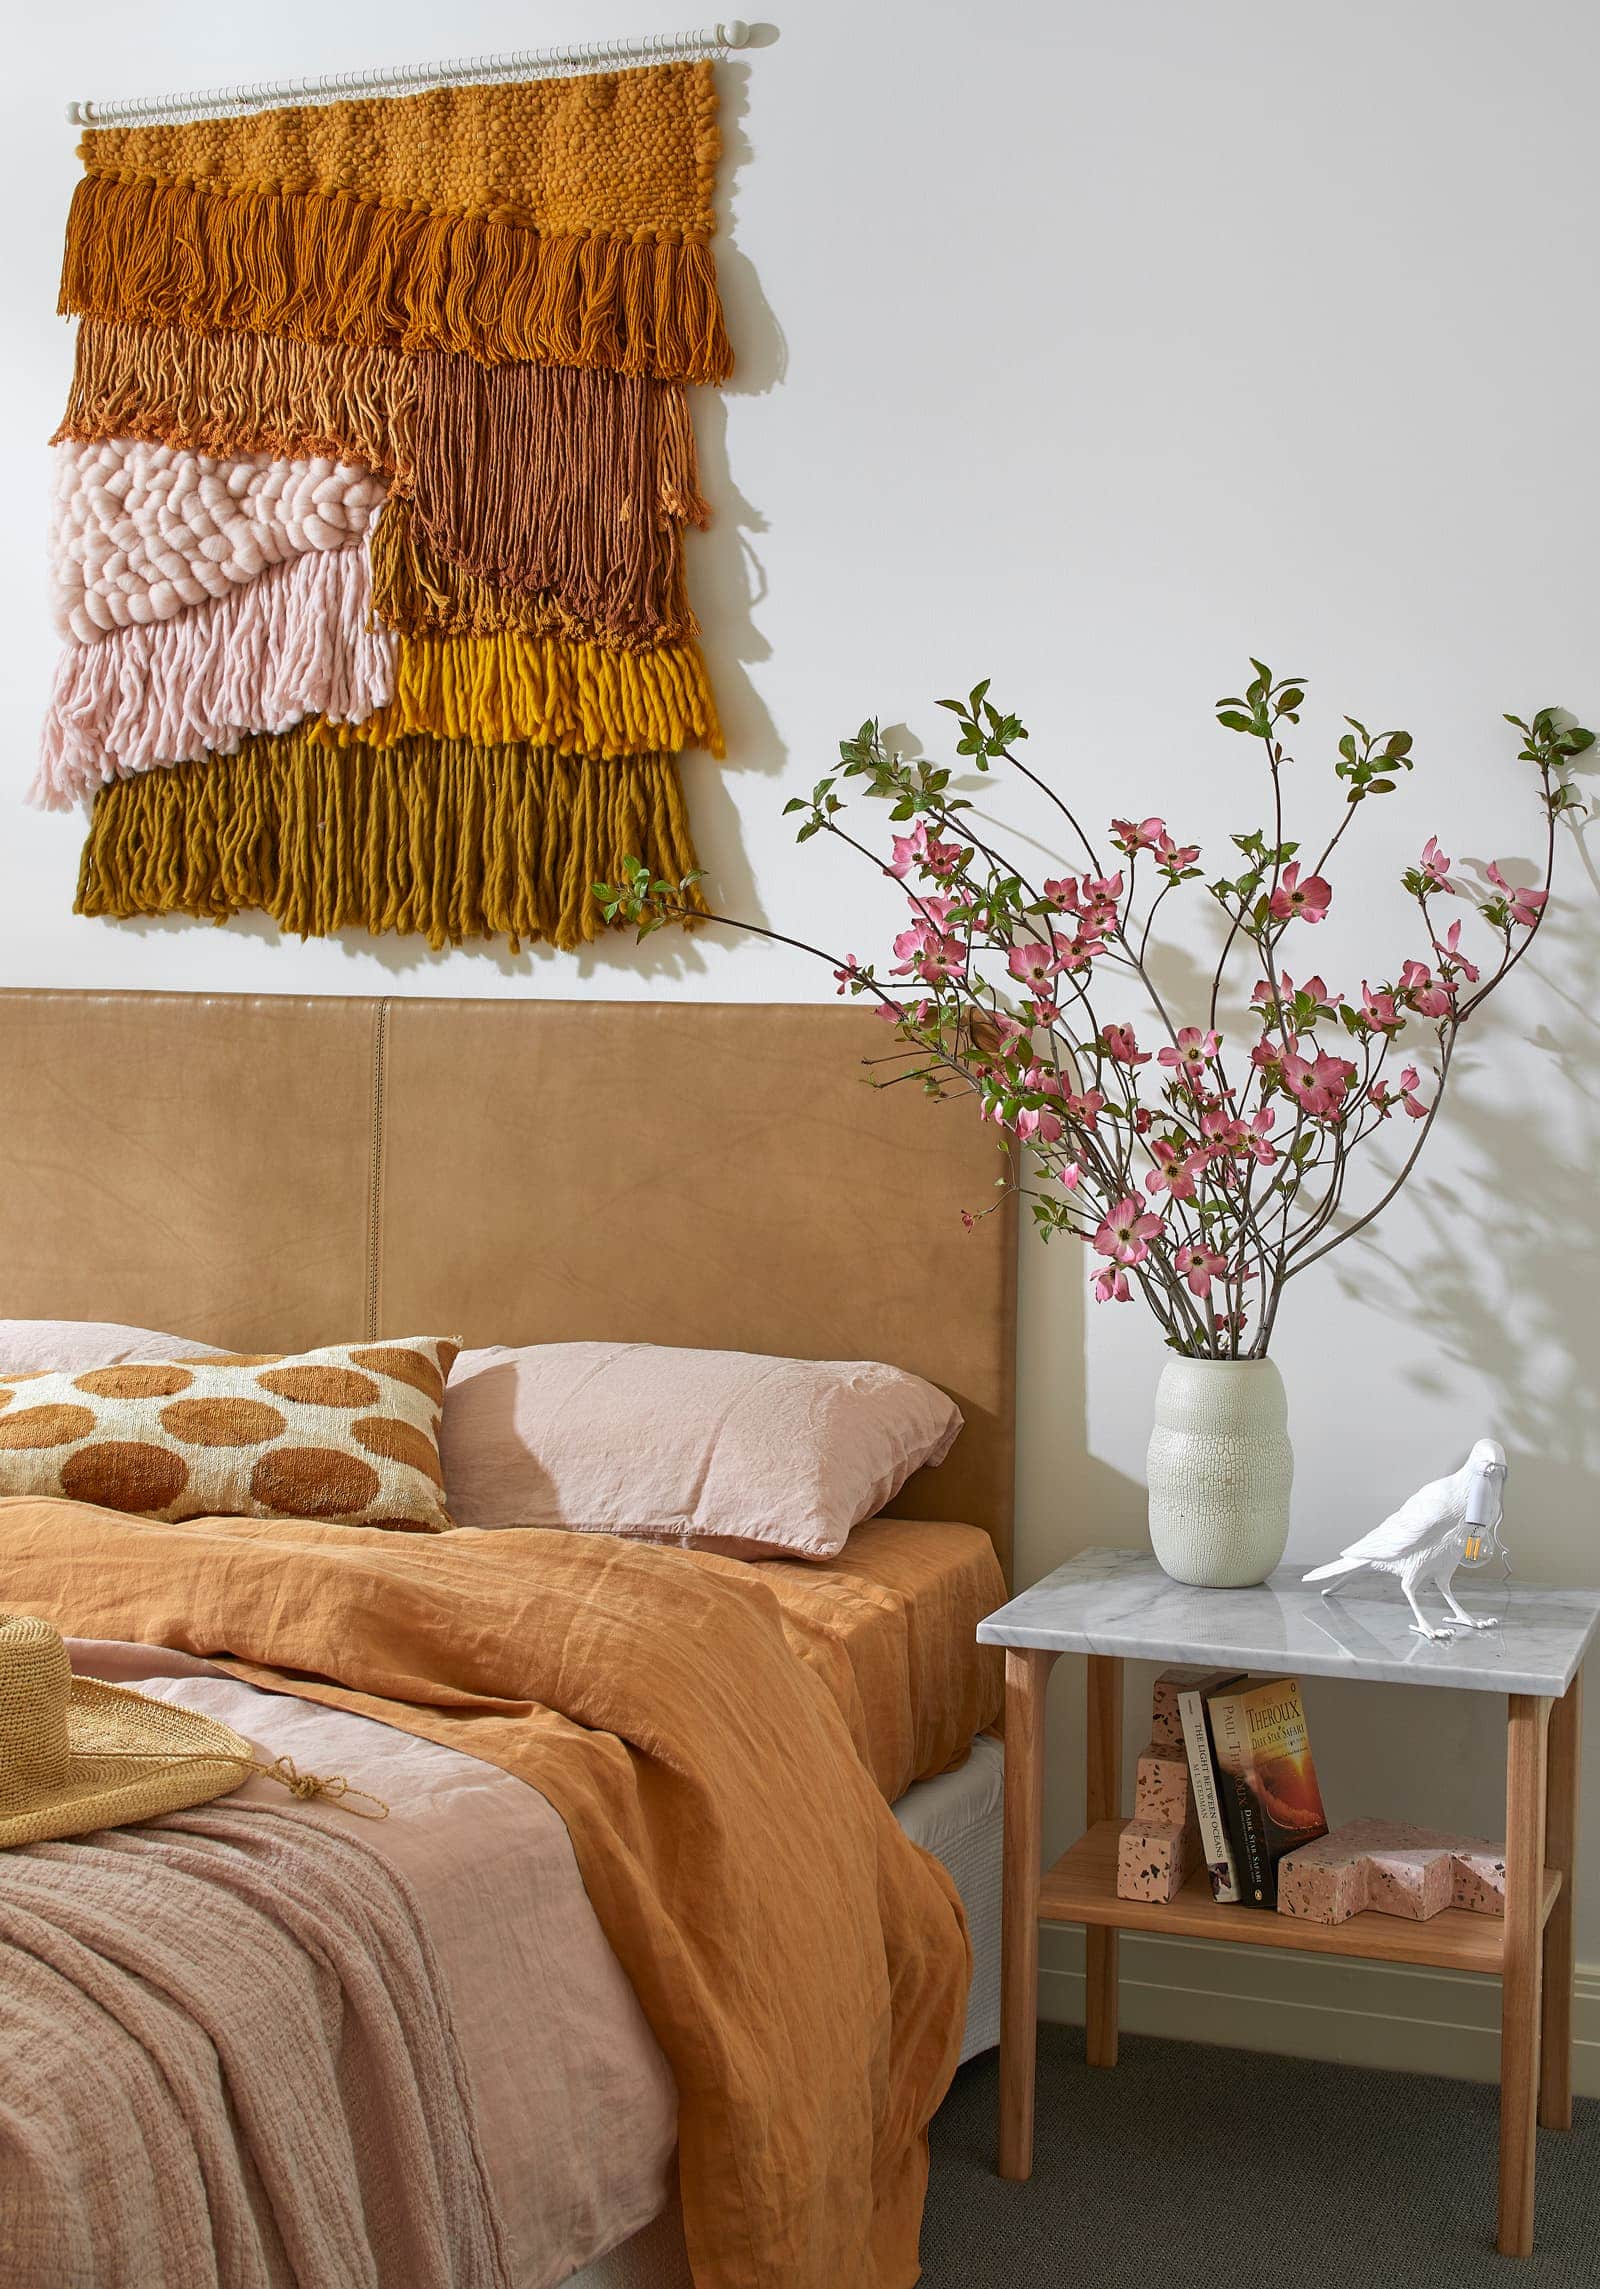 red-and-orange-textural-wall-hanging-above-headboard-in-bedroom